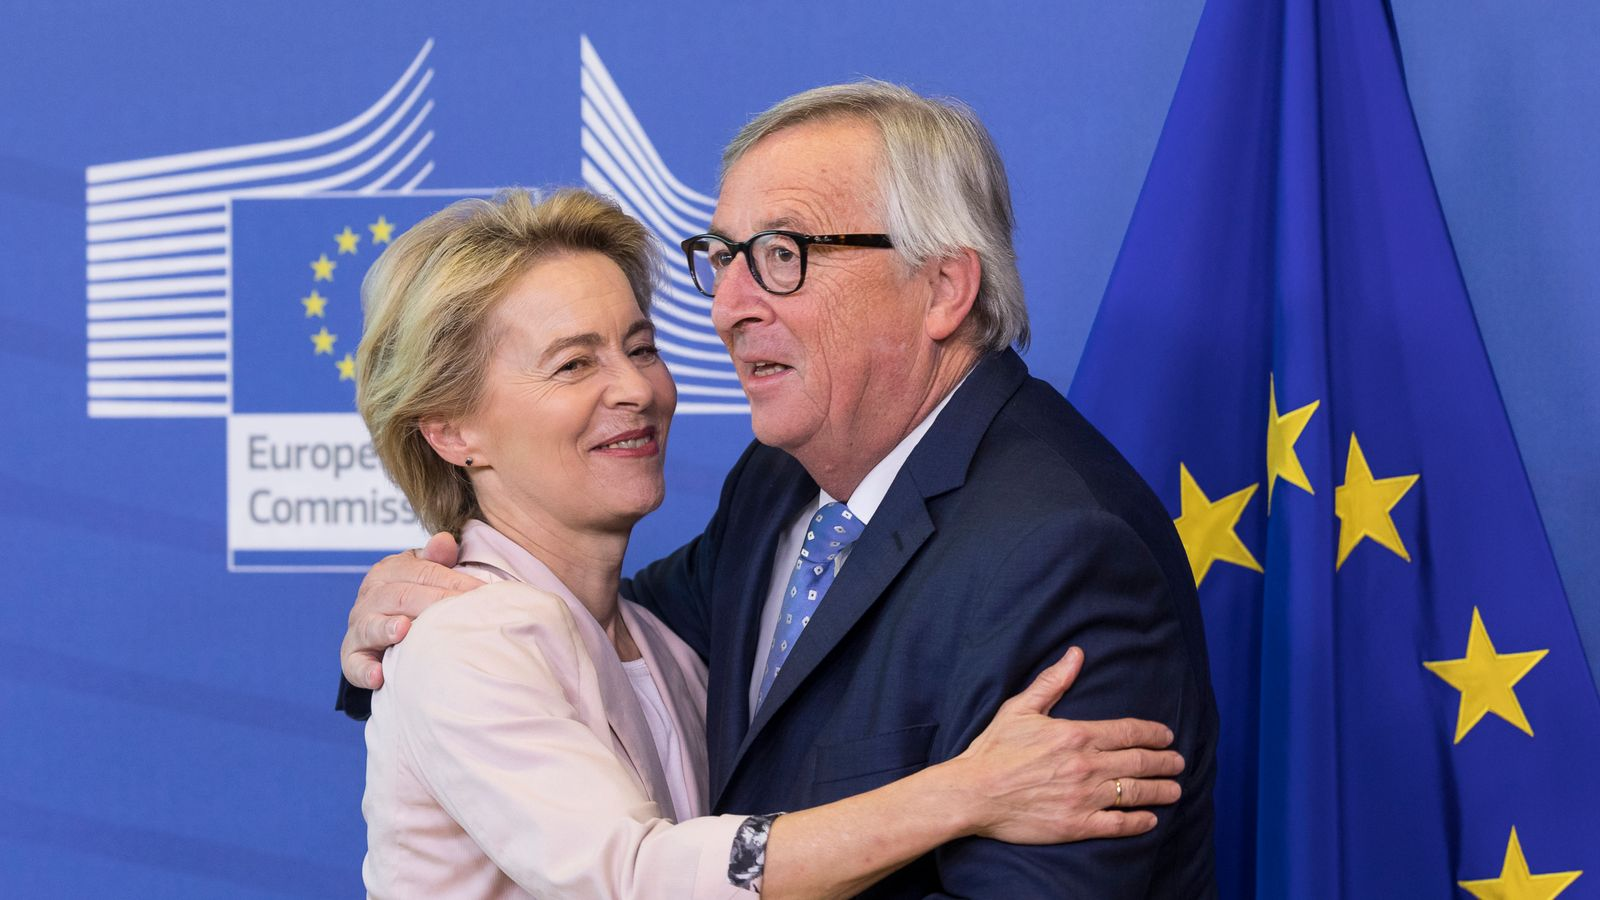 Ms von der Leyen will replace Jean-Claude Juncker if the move is approved by MEPs